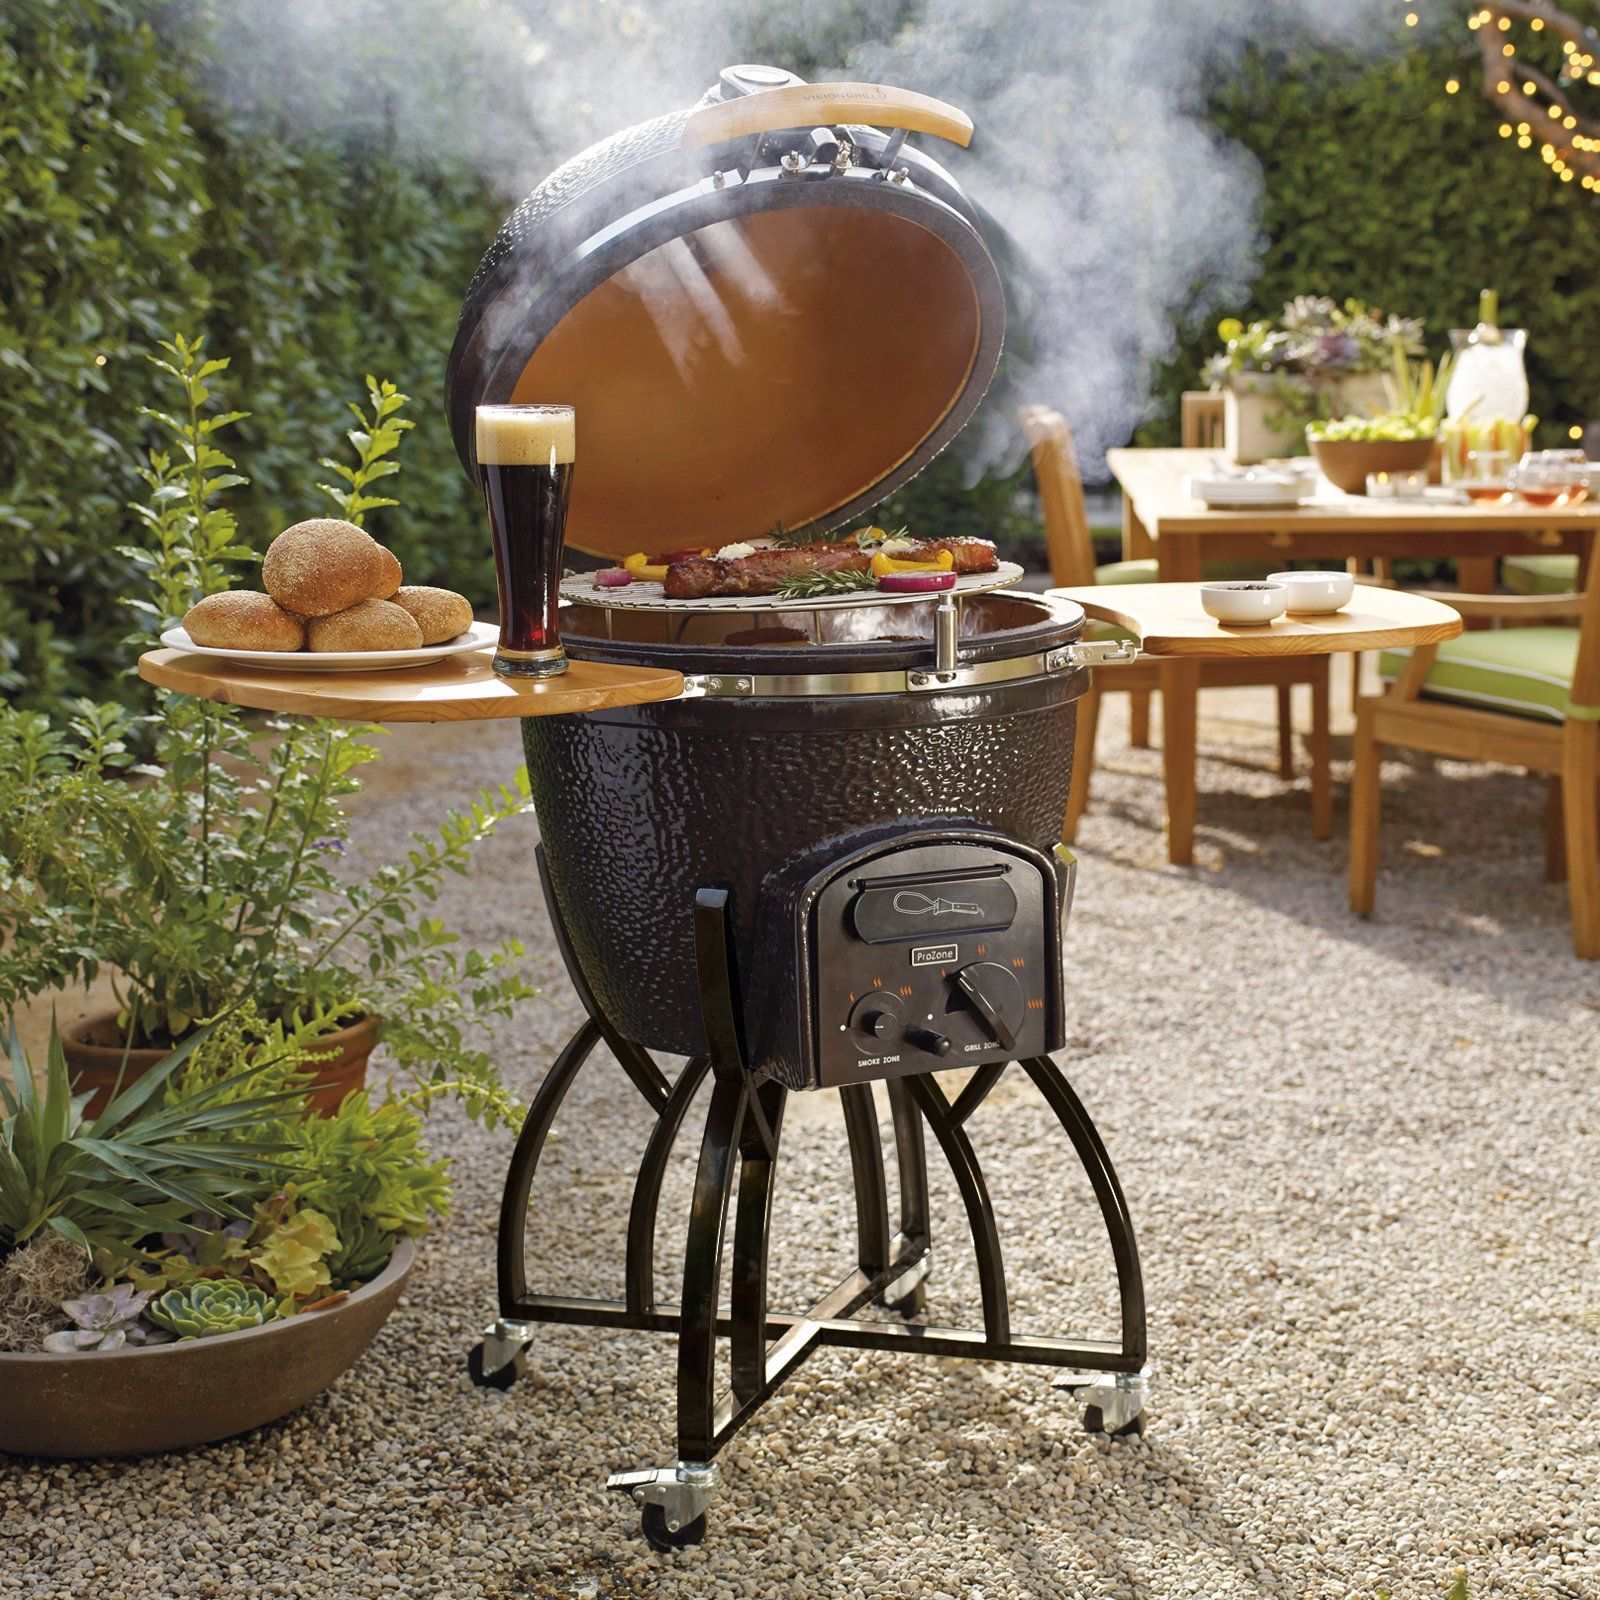 Have to have it vision grills professional c series super bundle vision grills professional c series super bundle kamado grill 89999 dailygadgetfo Images